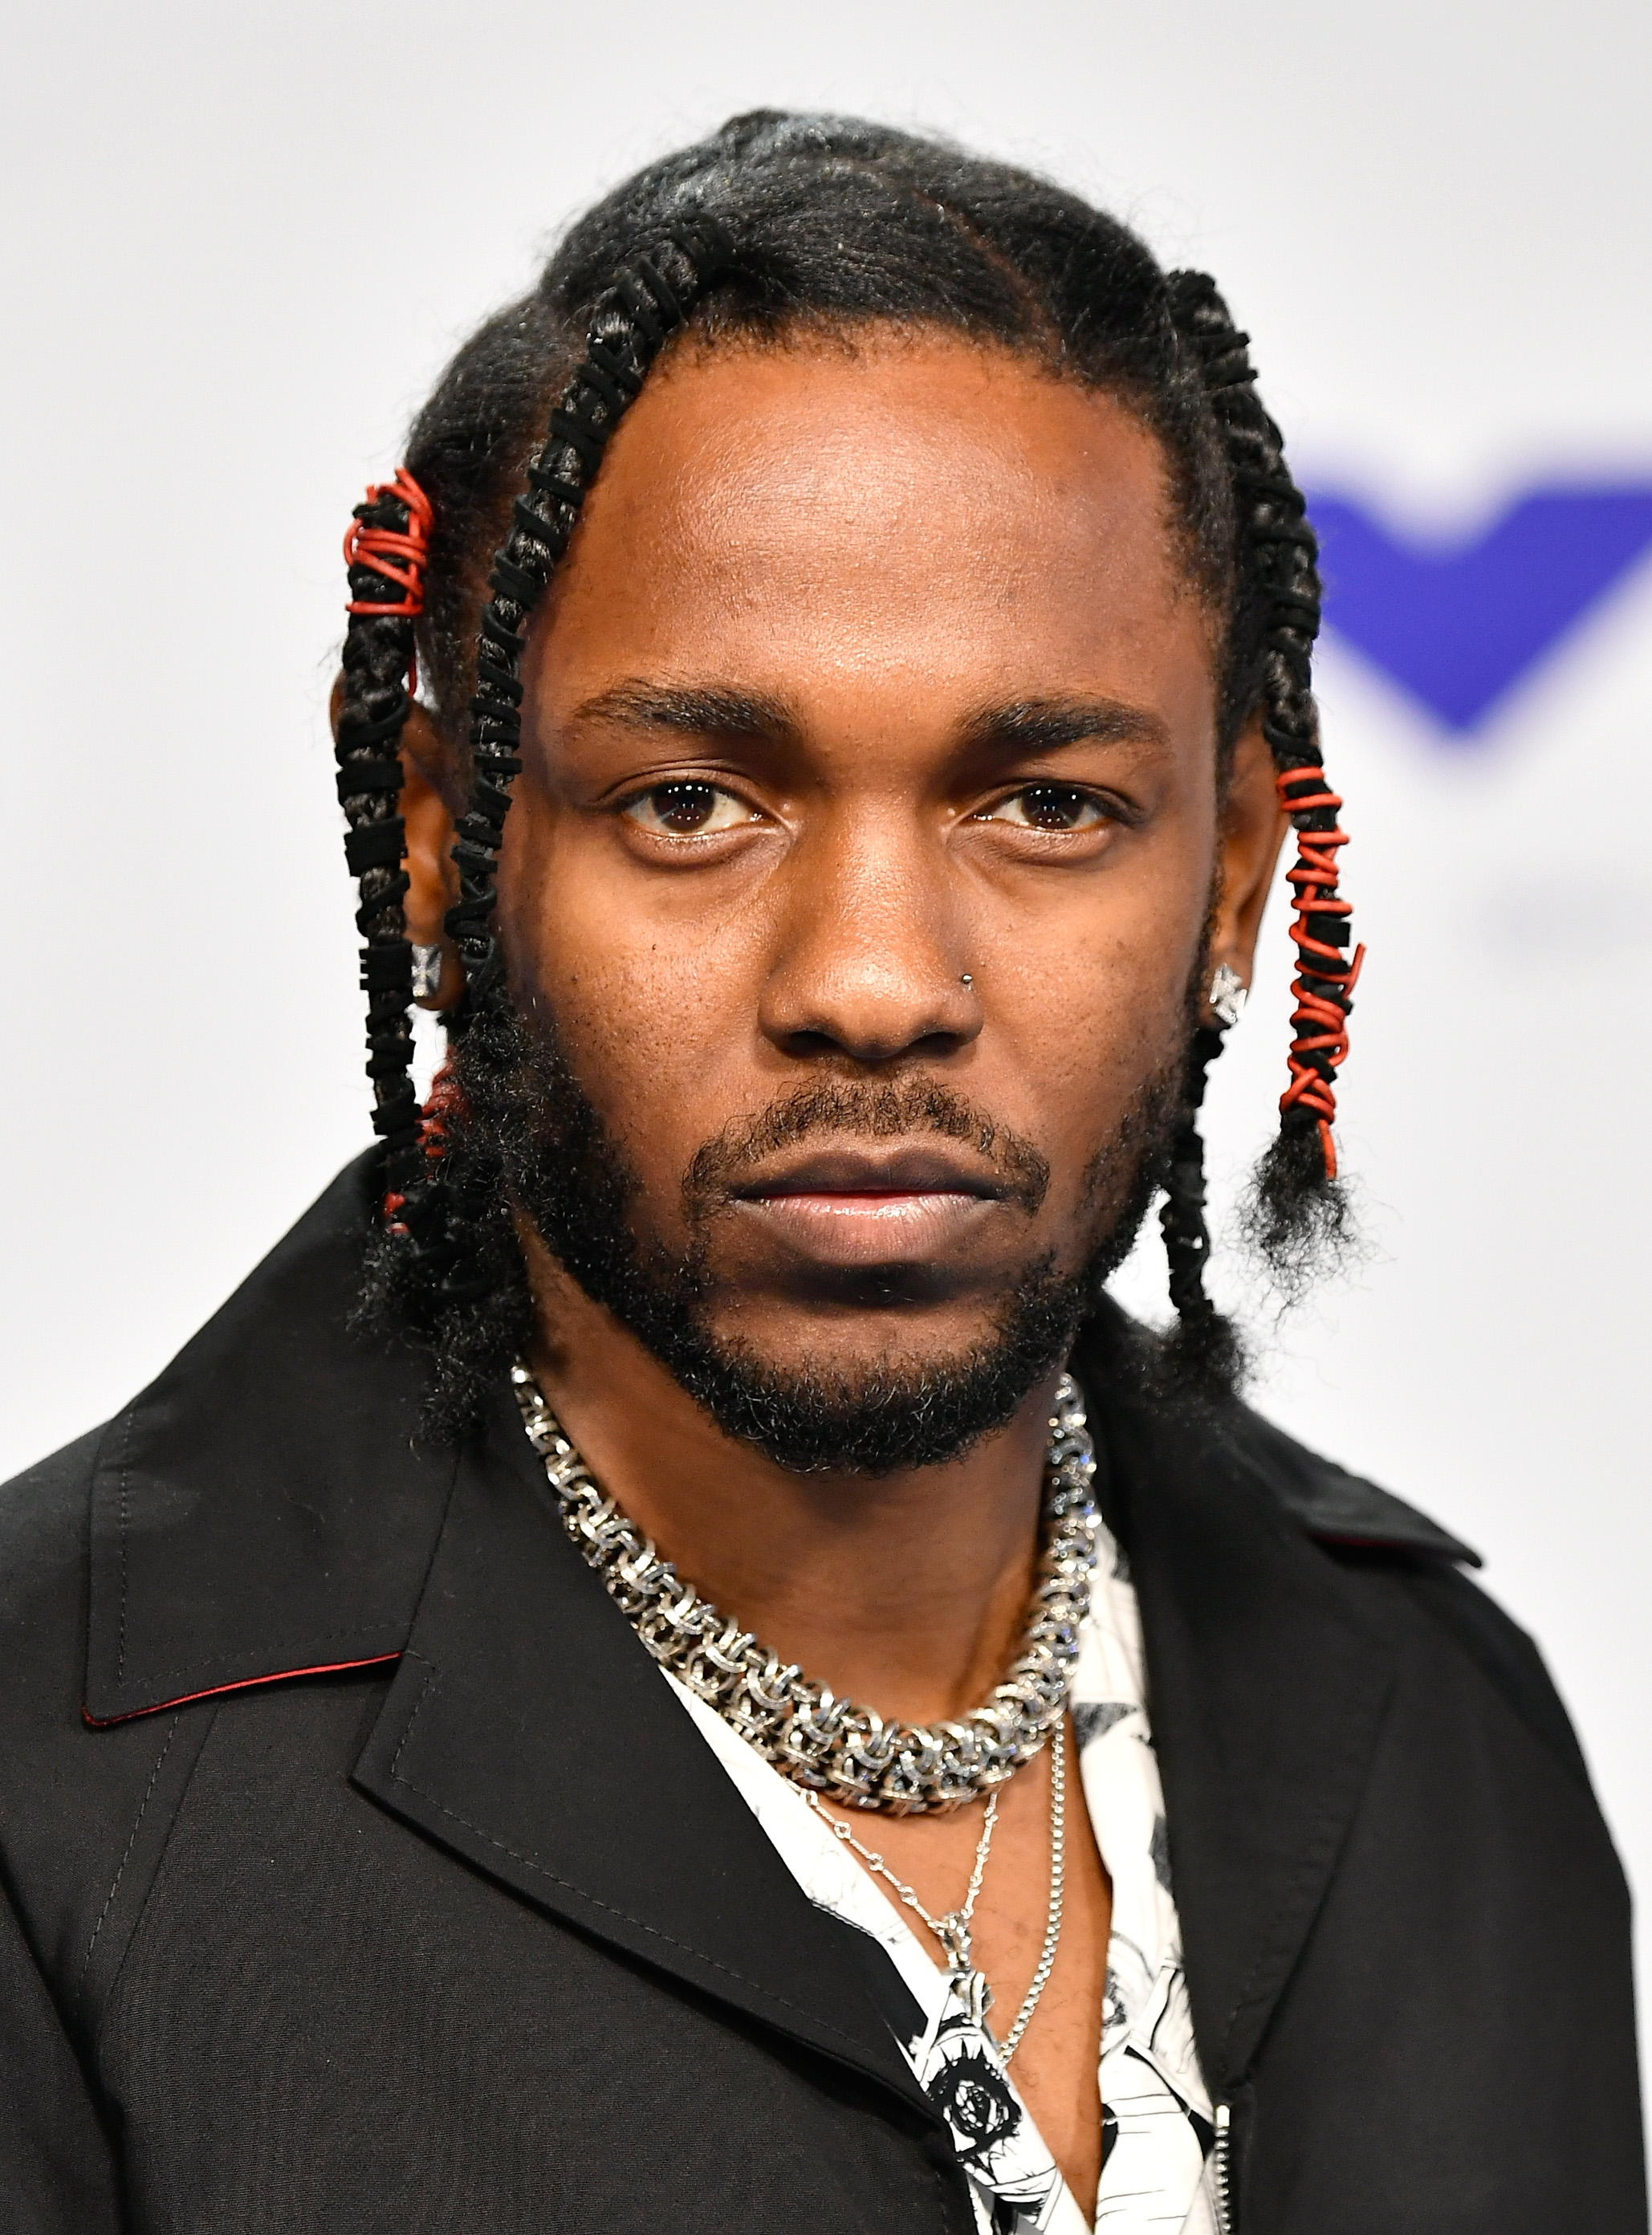 Kendrick Lamar S Biography The Butterfly Effect To Be Released October 2020 The Shade Room